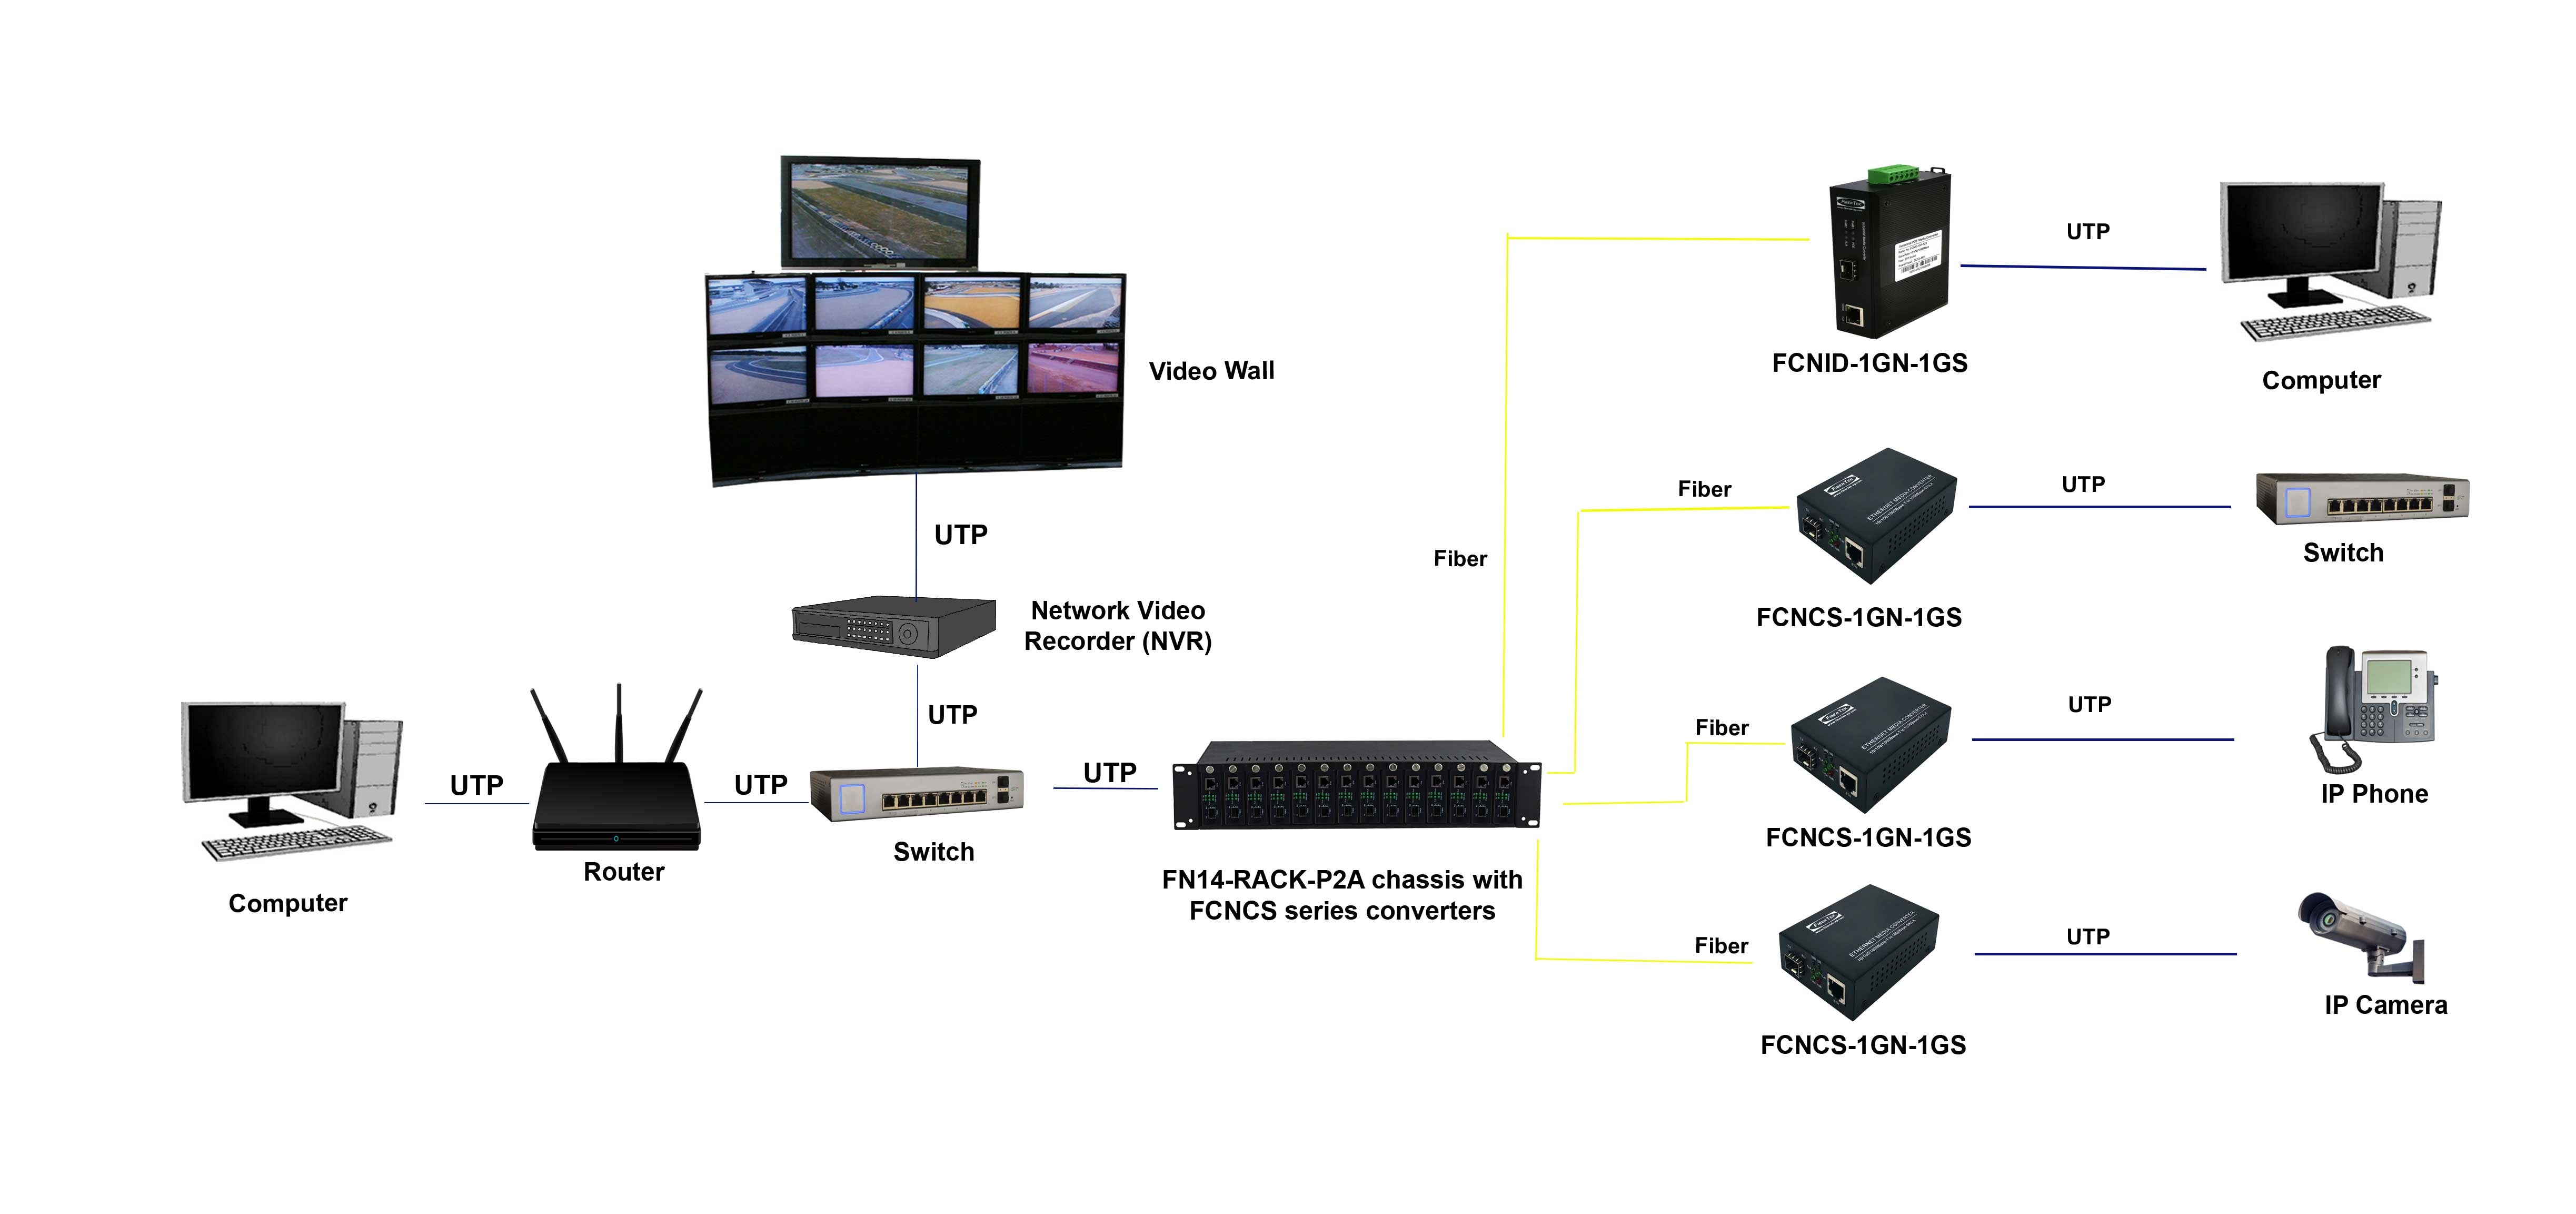 Application diagram of FN14-RACK-P2A media converter chassis